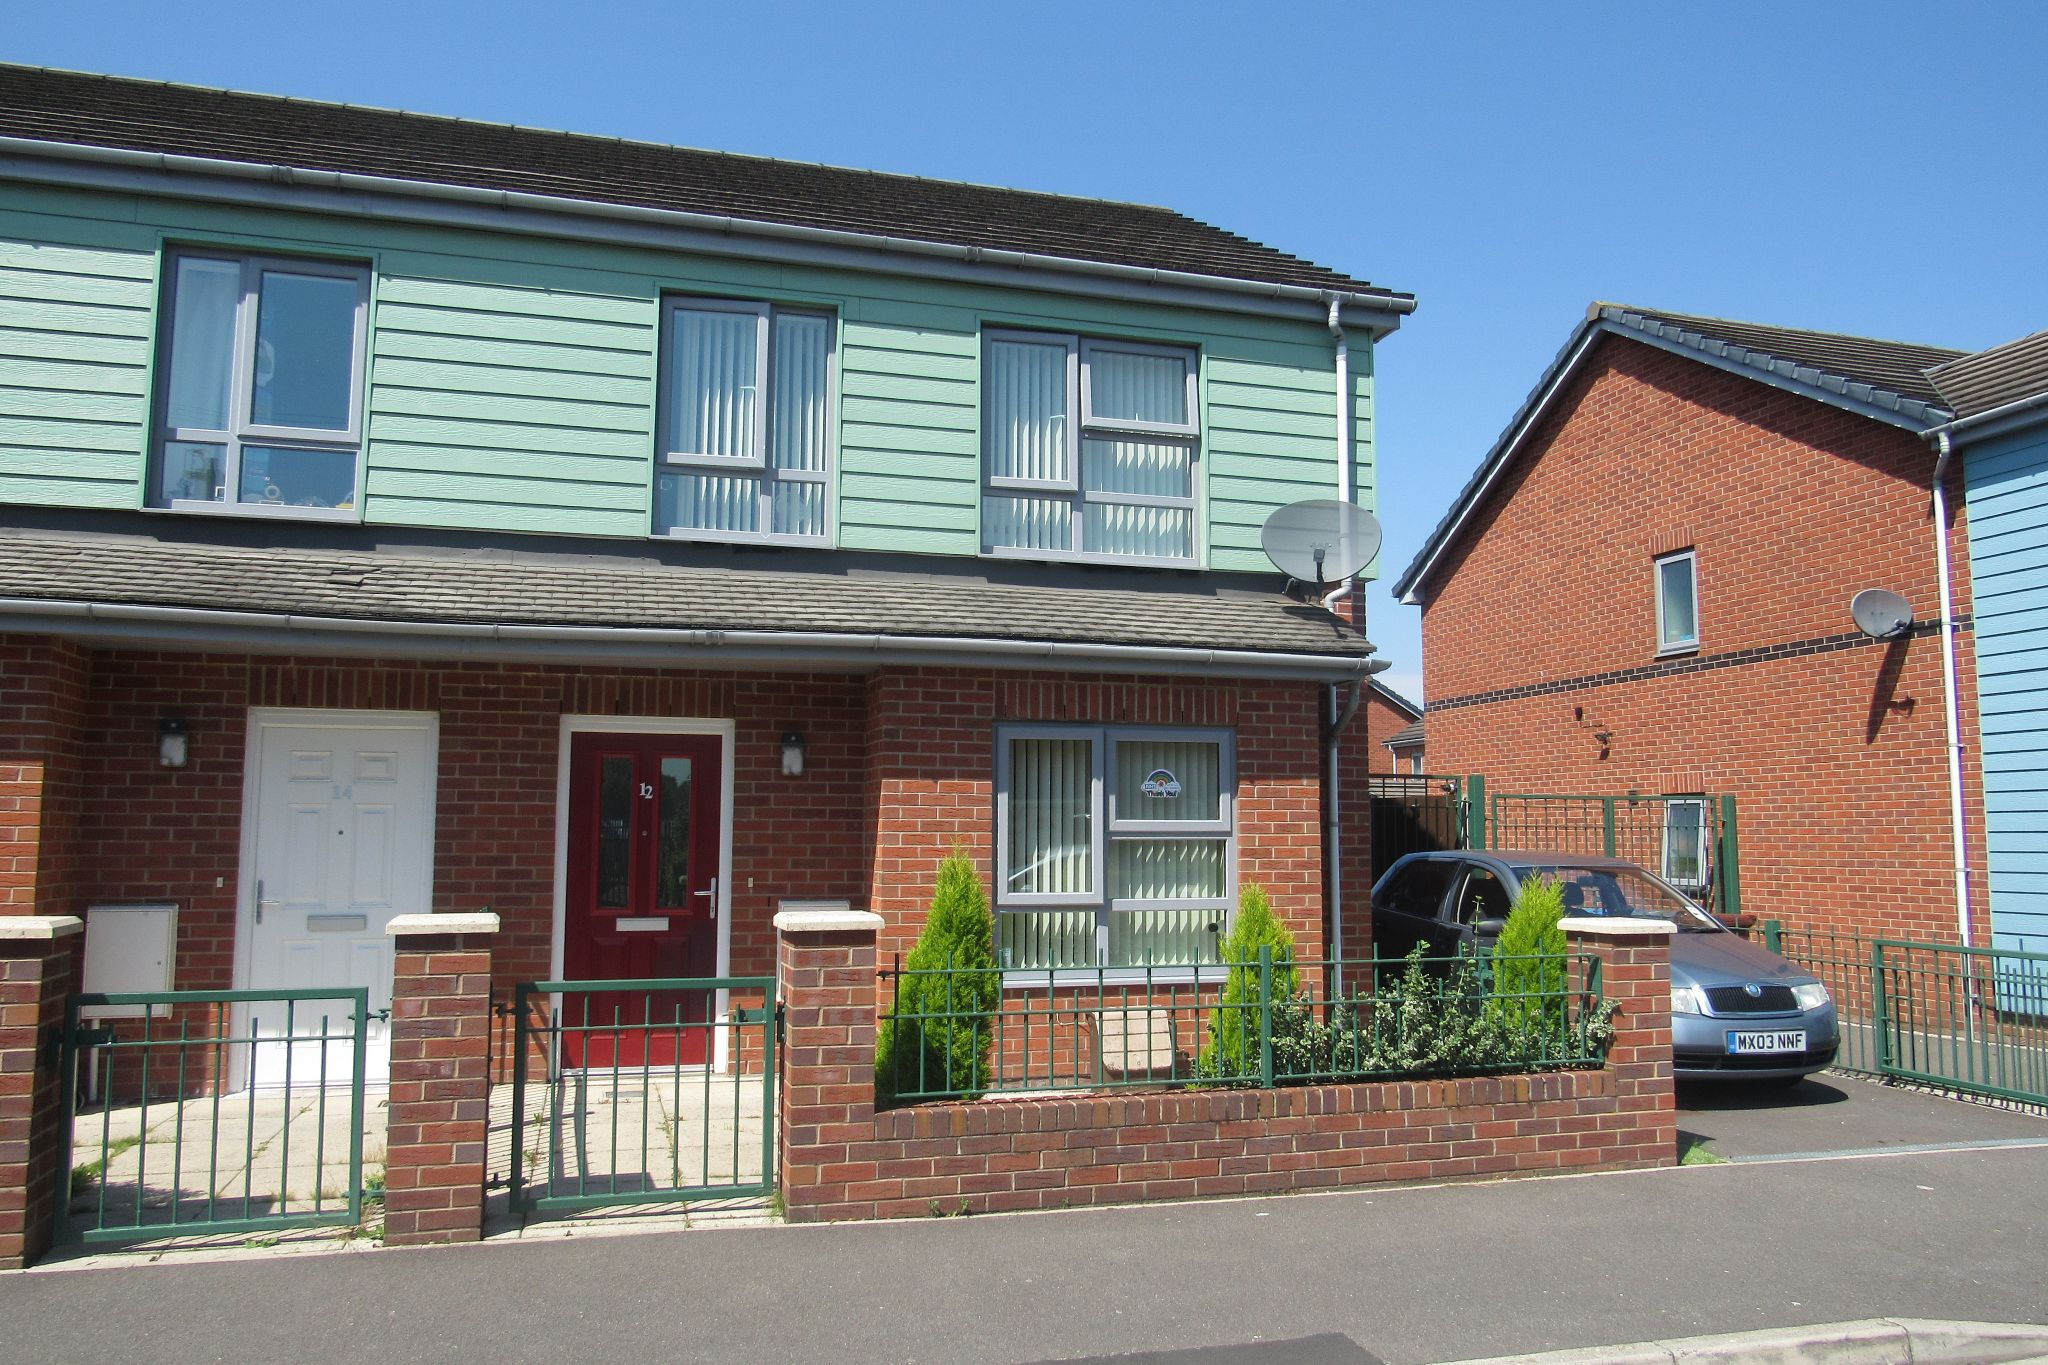 3 bedroom semi-detached house SSTC in Manchester - Photograph 1.